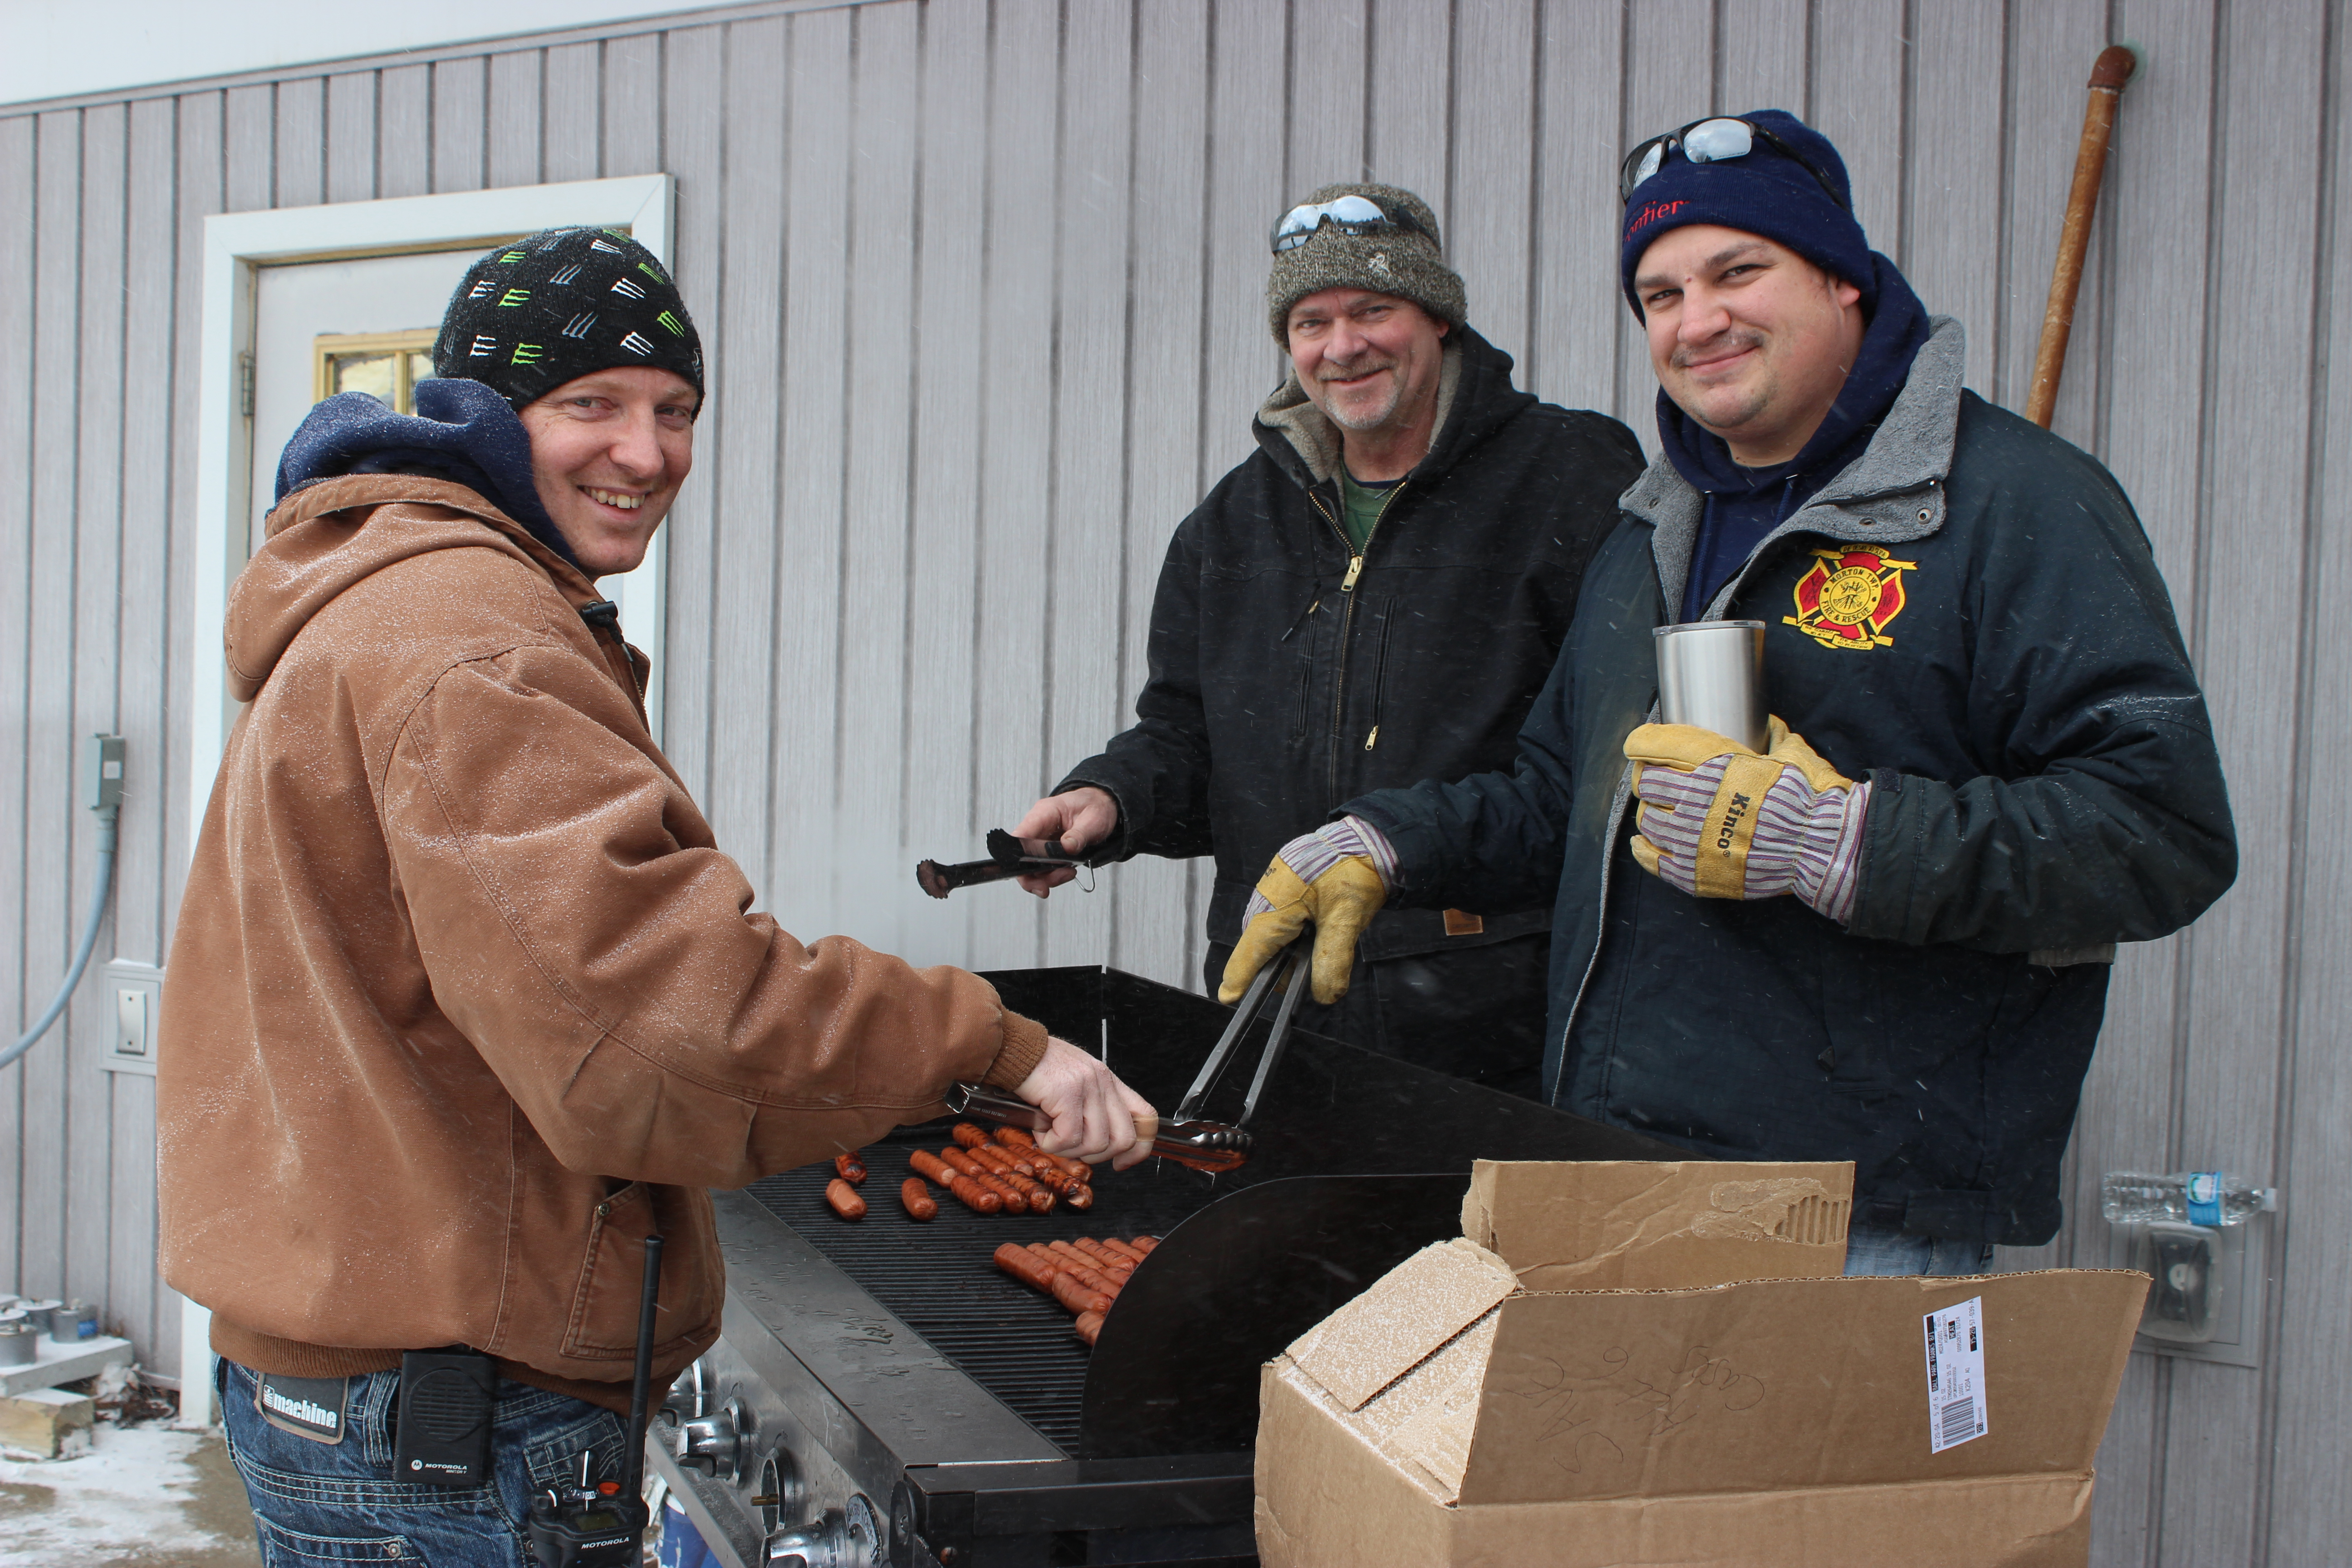 Firemen cooking hot dogs at the Winter Carnival!